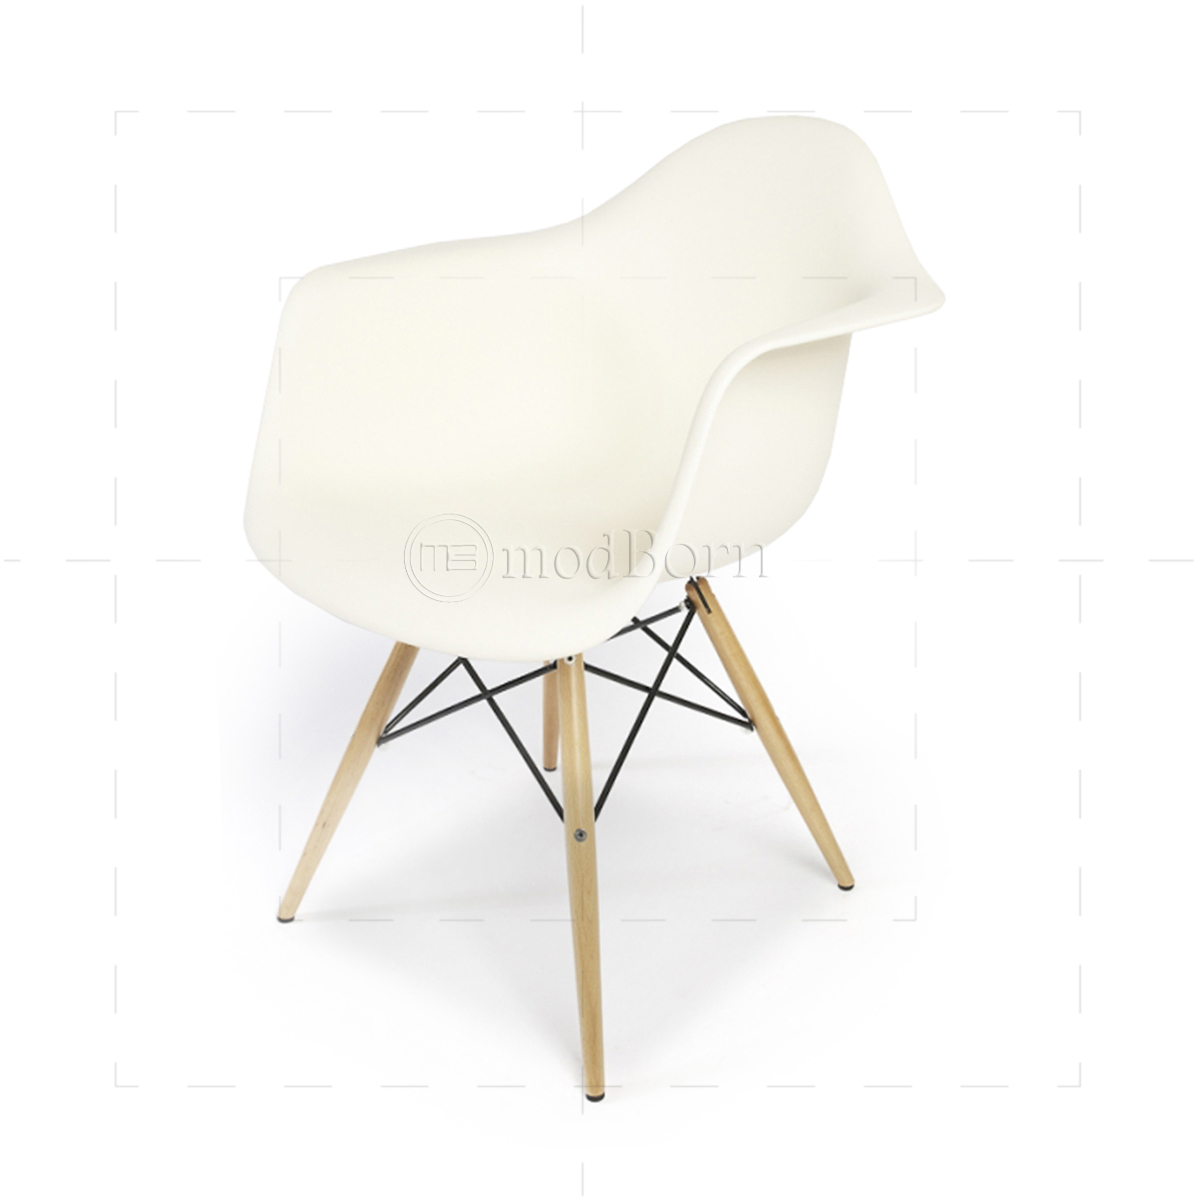 Eames style dining daw arm chair white replica for Eames chair replica deutschland